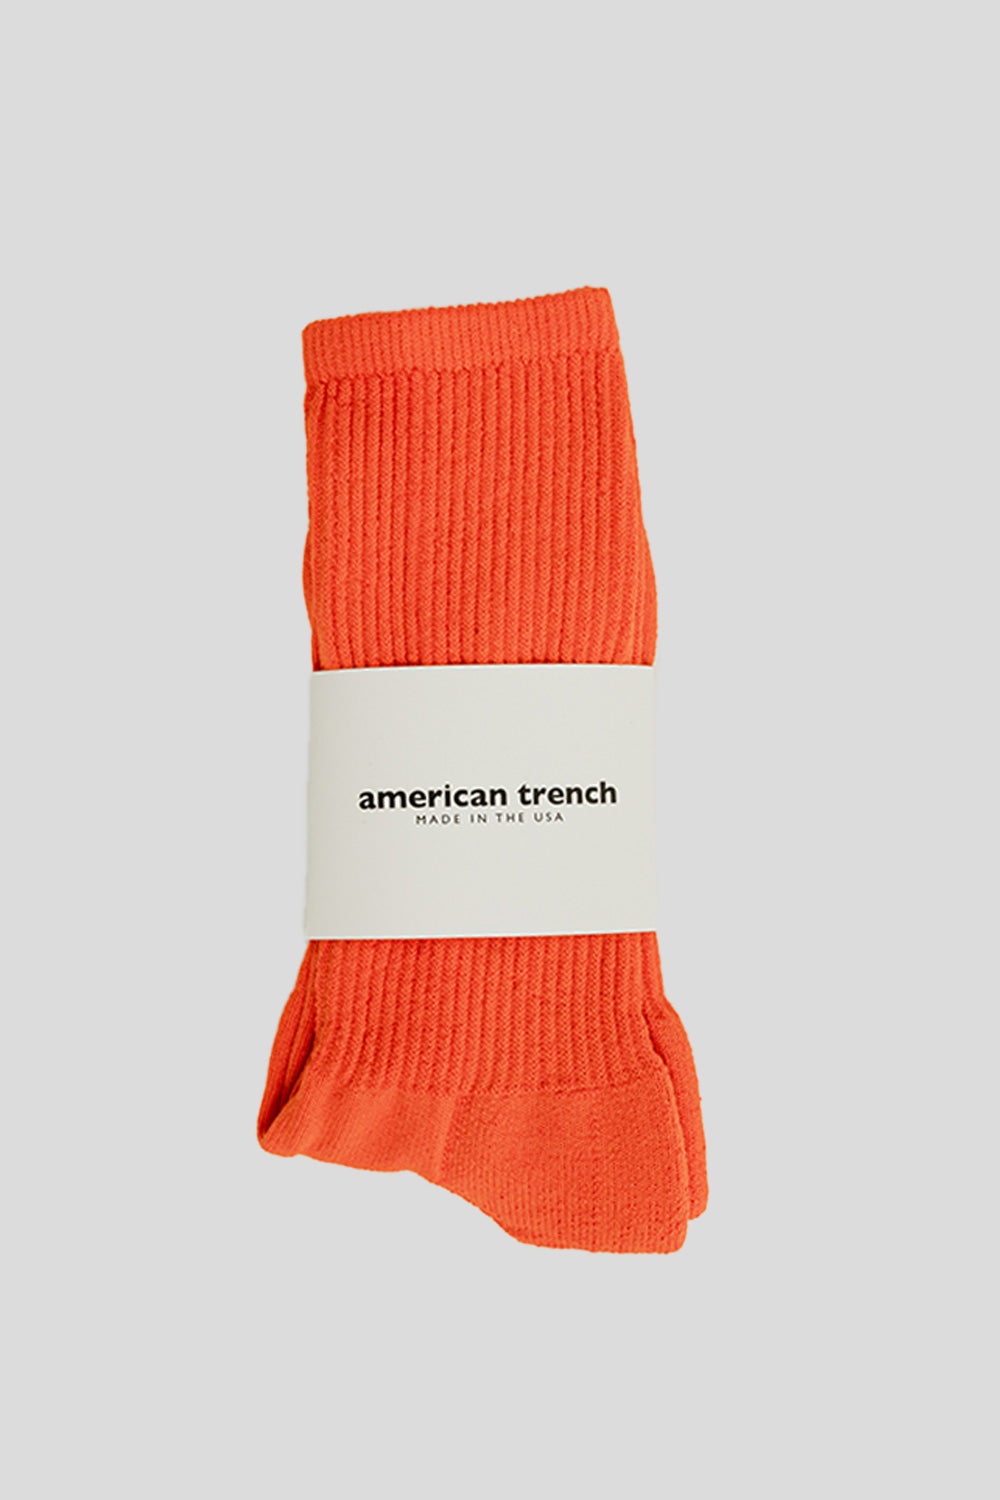 american-trench-mil-spec-sport-safety-orange